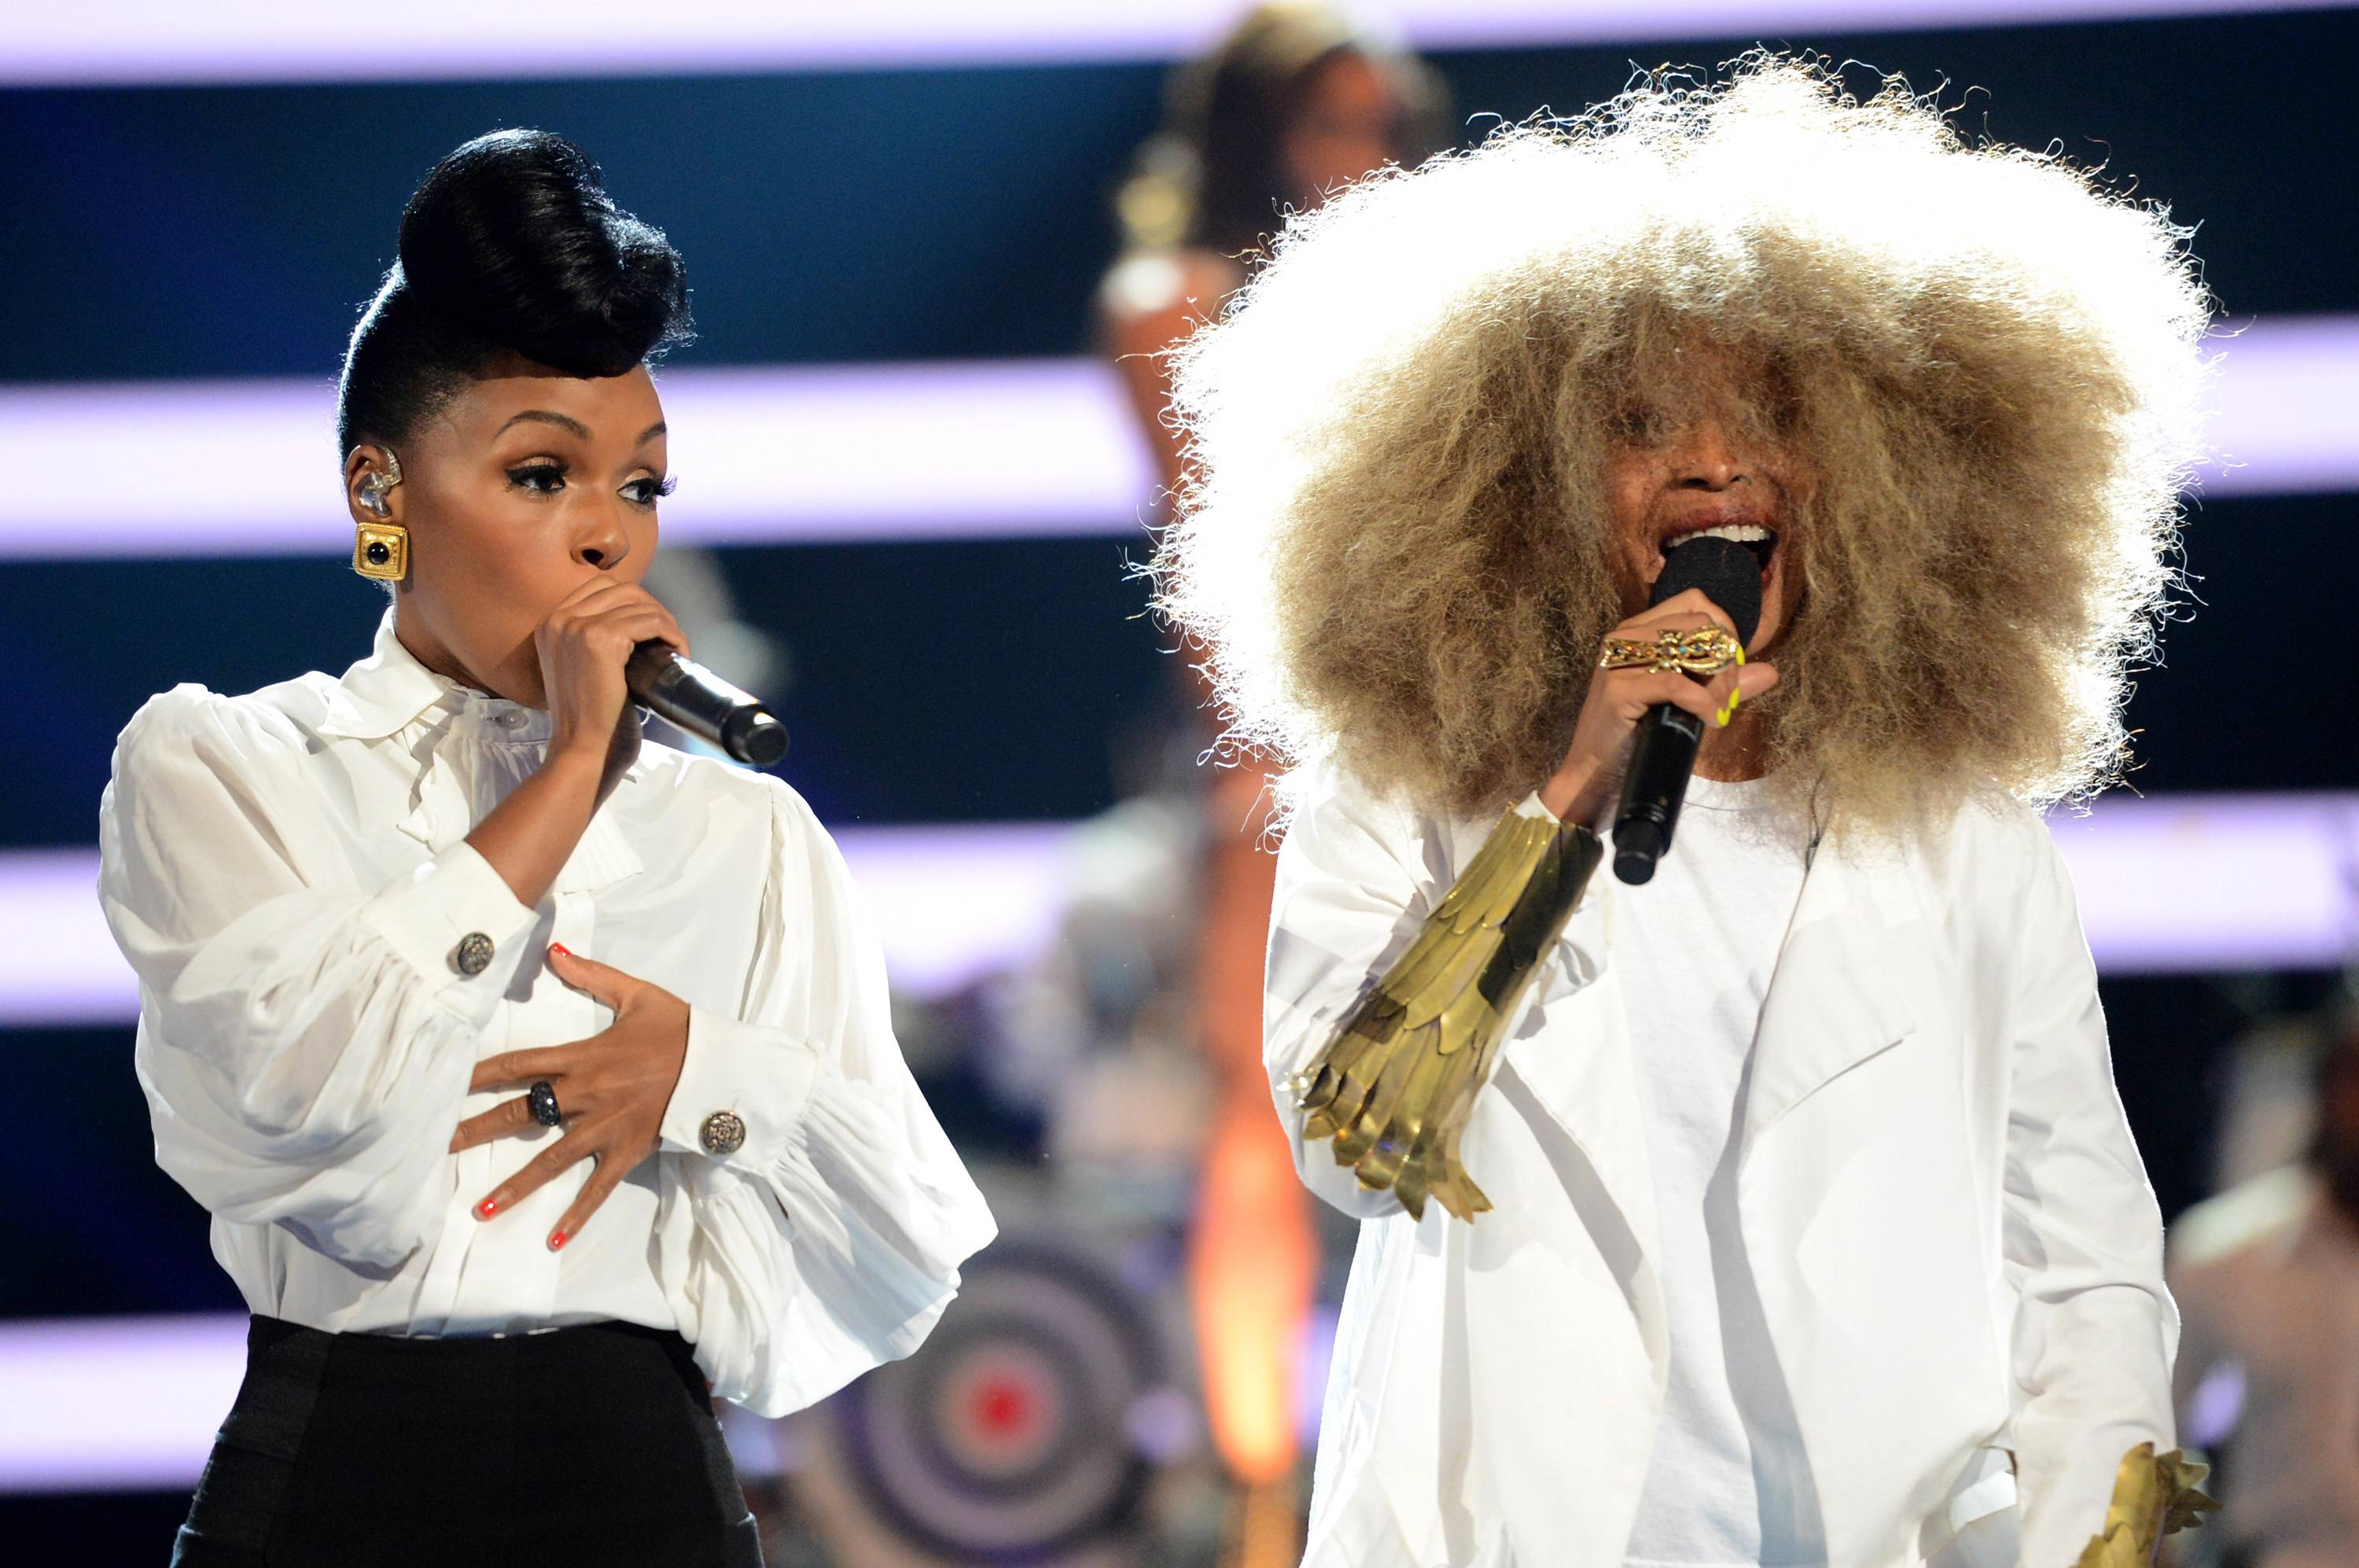 Rockin' Good Time - The song wouldn't be complete without Erykah Badu! Both queens linked up to close out the show. BET Awards 2013 was another incredible night!(Photo: Jason Merritt/Getty Images for BET)